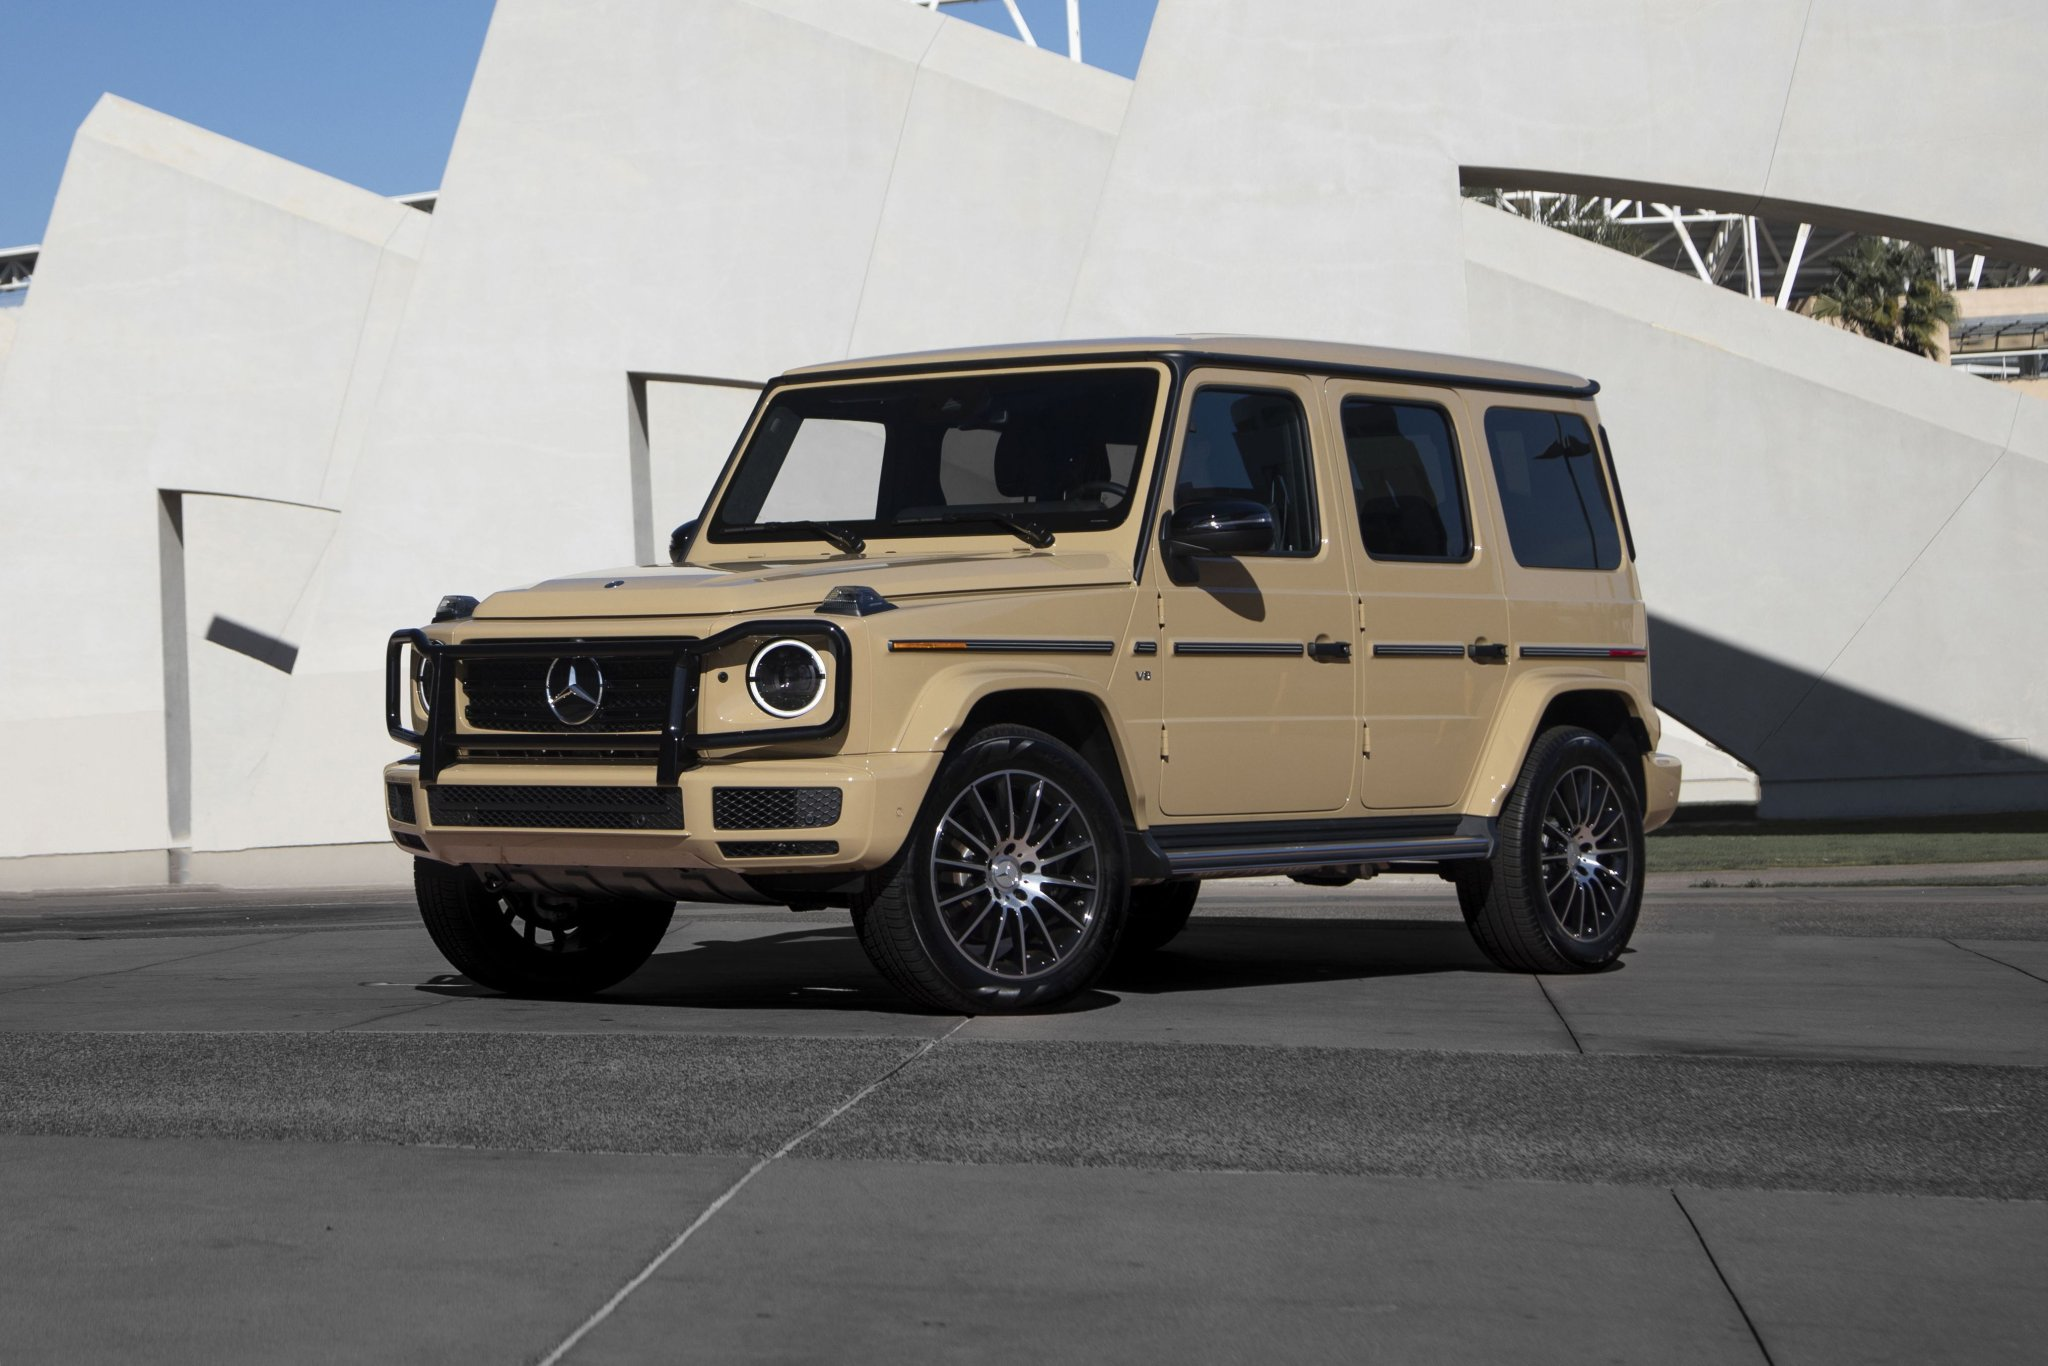 This Is What Makes The Mercedes G Wagon Worth Over $150,000